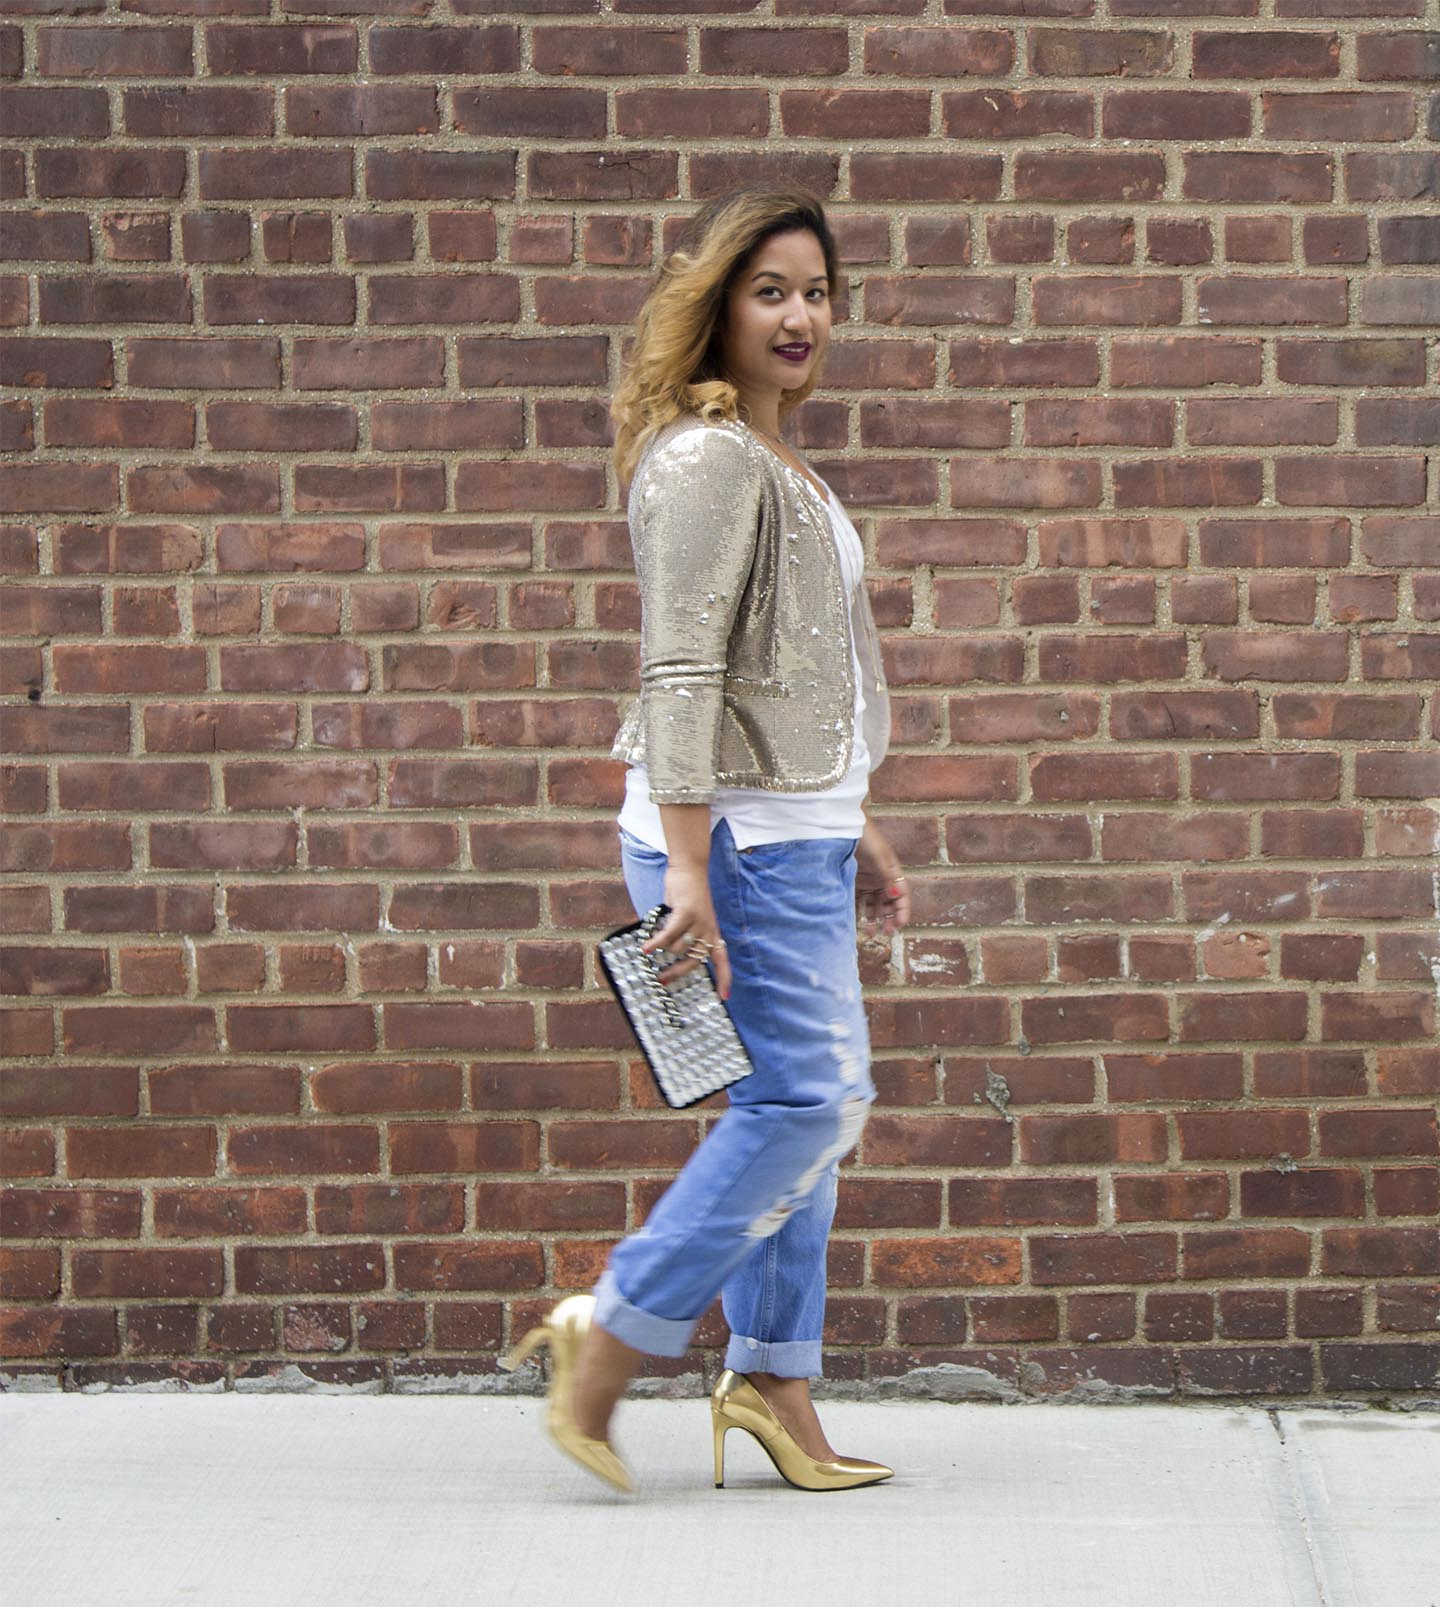 Sequin Jacket & Ripped Jeans 4.jpg